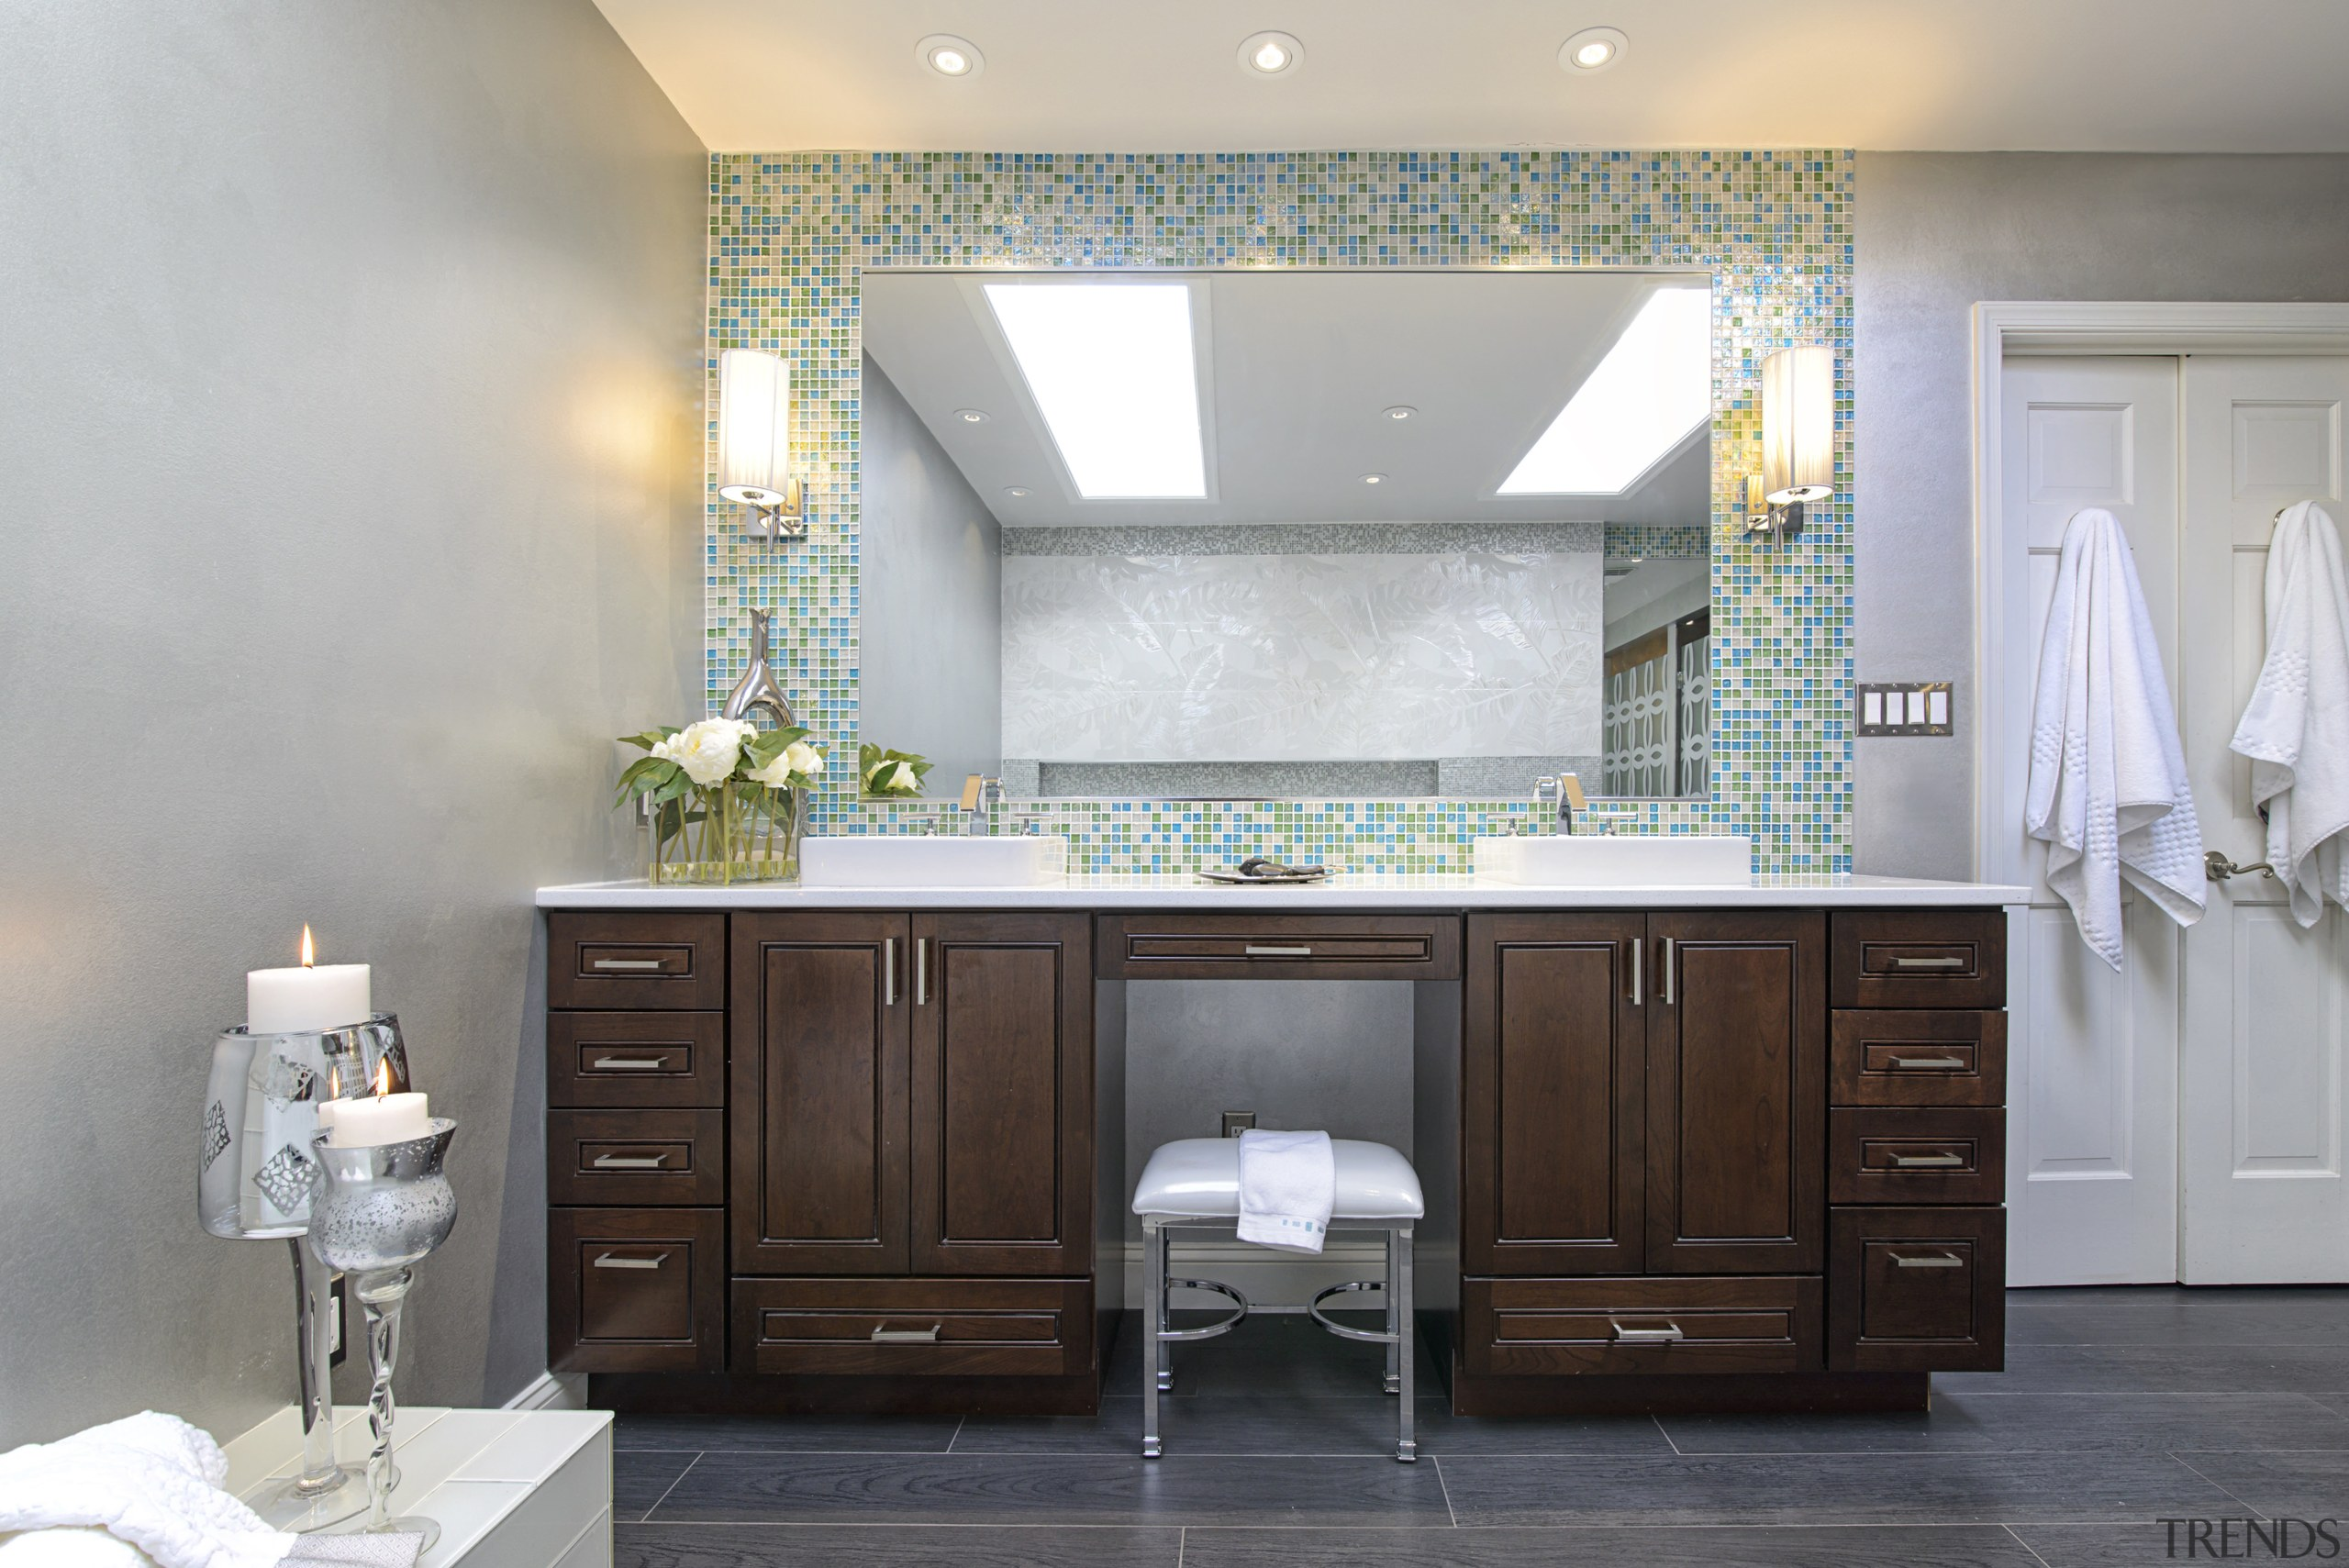 The blues and greens of the this mosaic bathroom, bathroom accessory, bathroom cabinet, cabinetry, countertop, home, interior design, room, gray